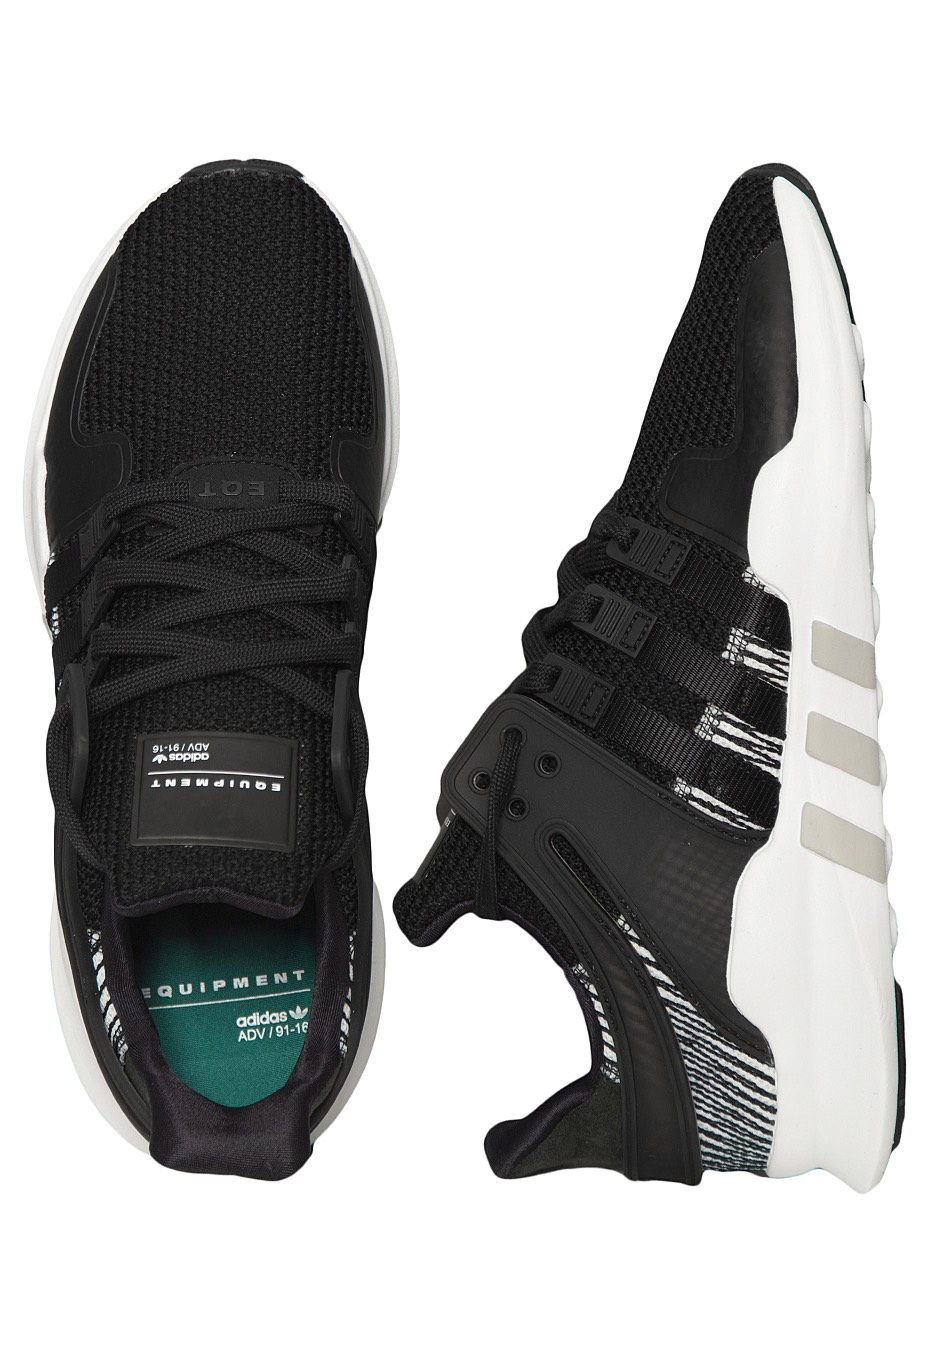 664ea81d1f39 Adidas - EQT Support ADV Core Black Core Black Ftwr White - Shoes -  Impericon.com AU